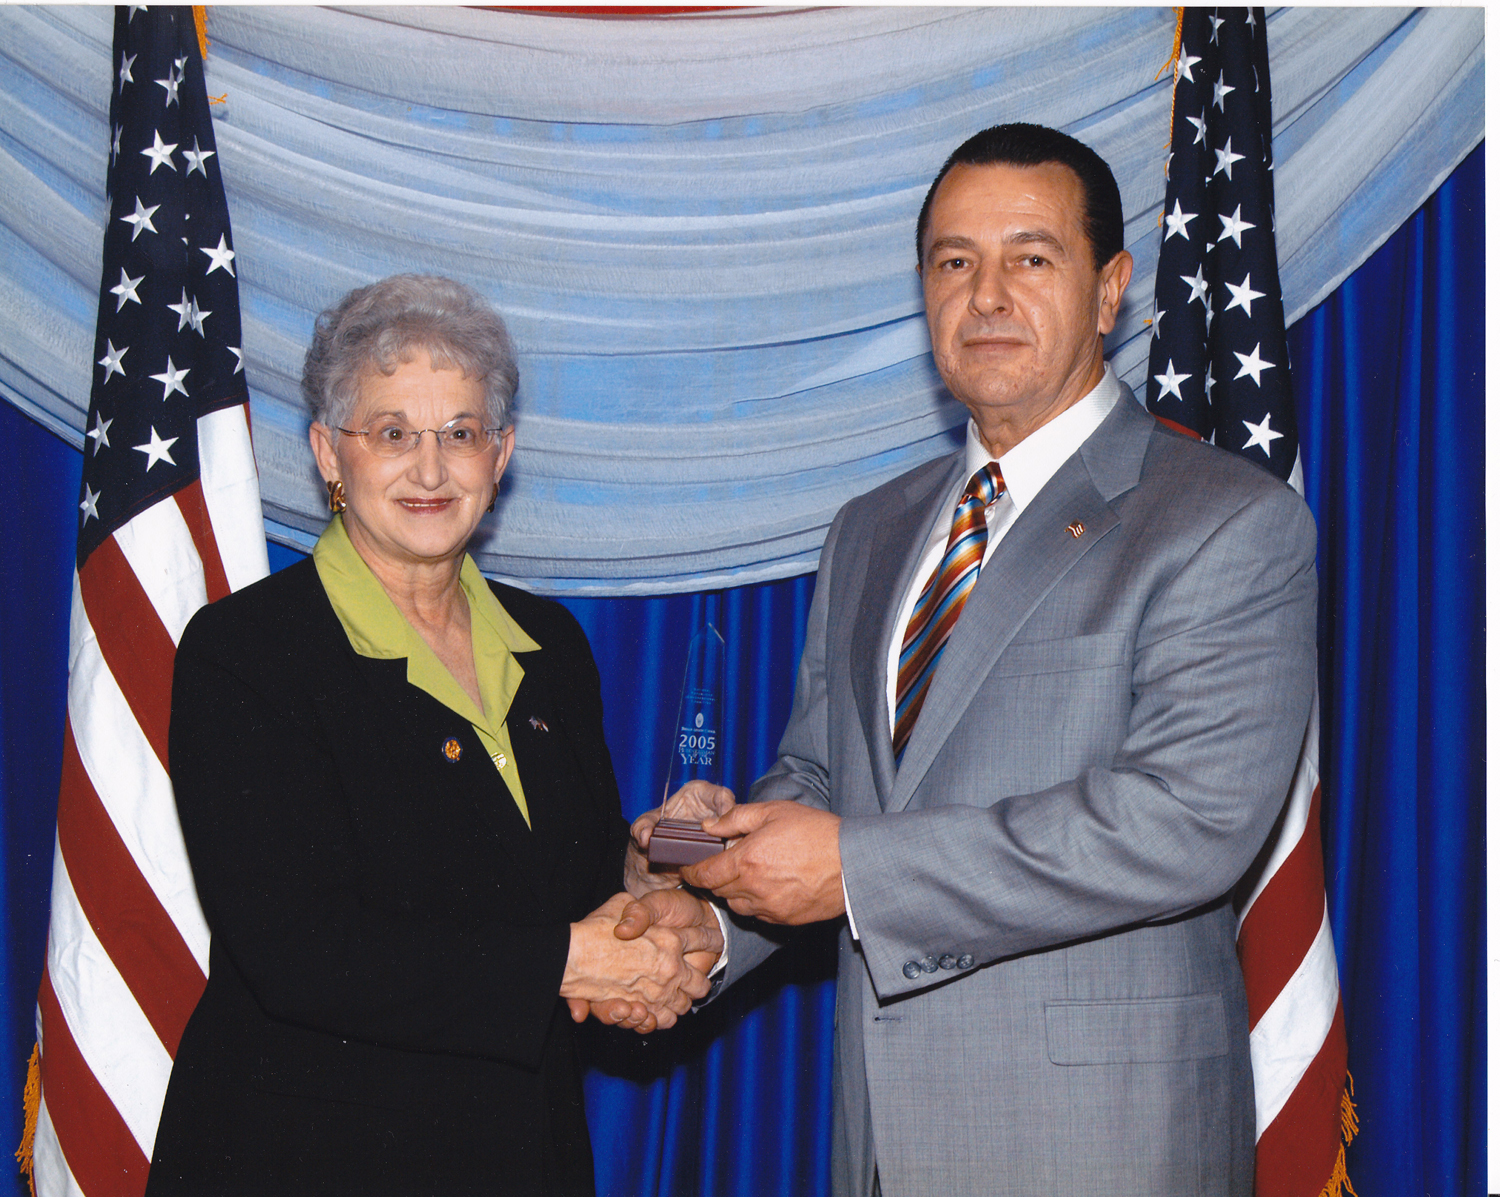 U.S. Representative Virginia Foxx and Vladimir Nazarov